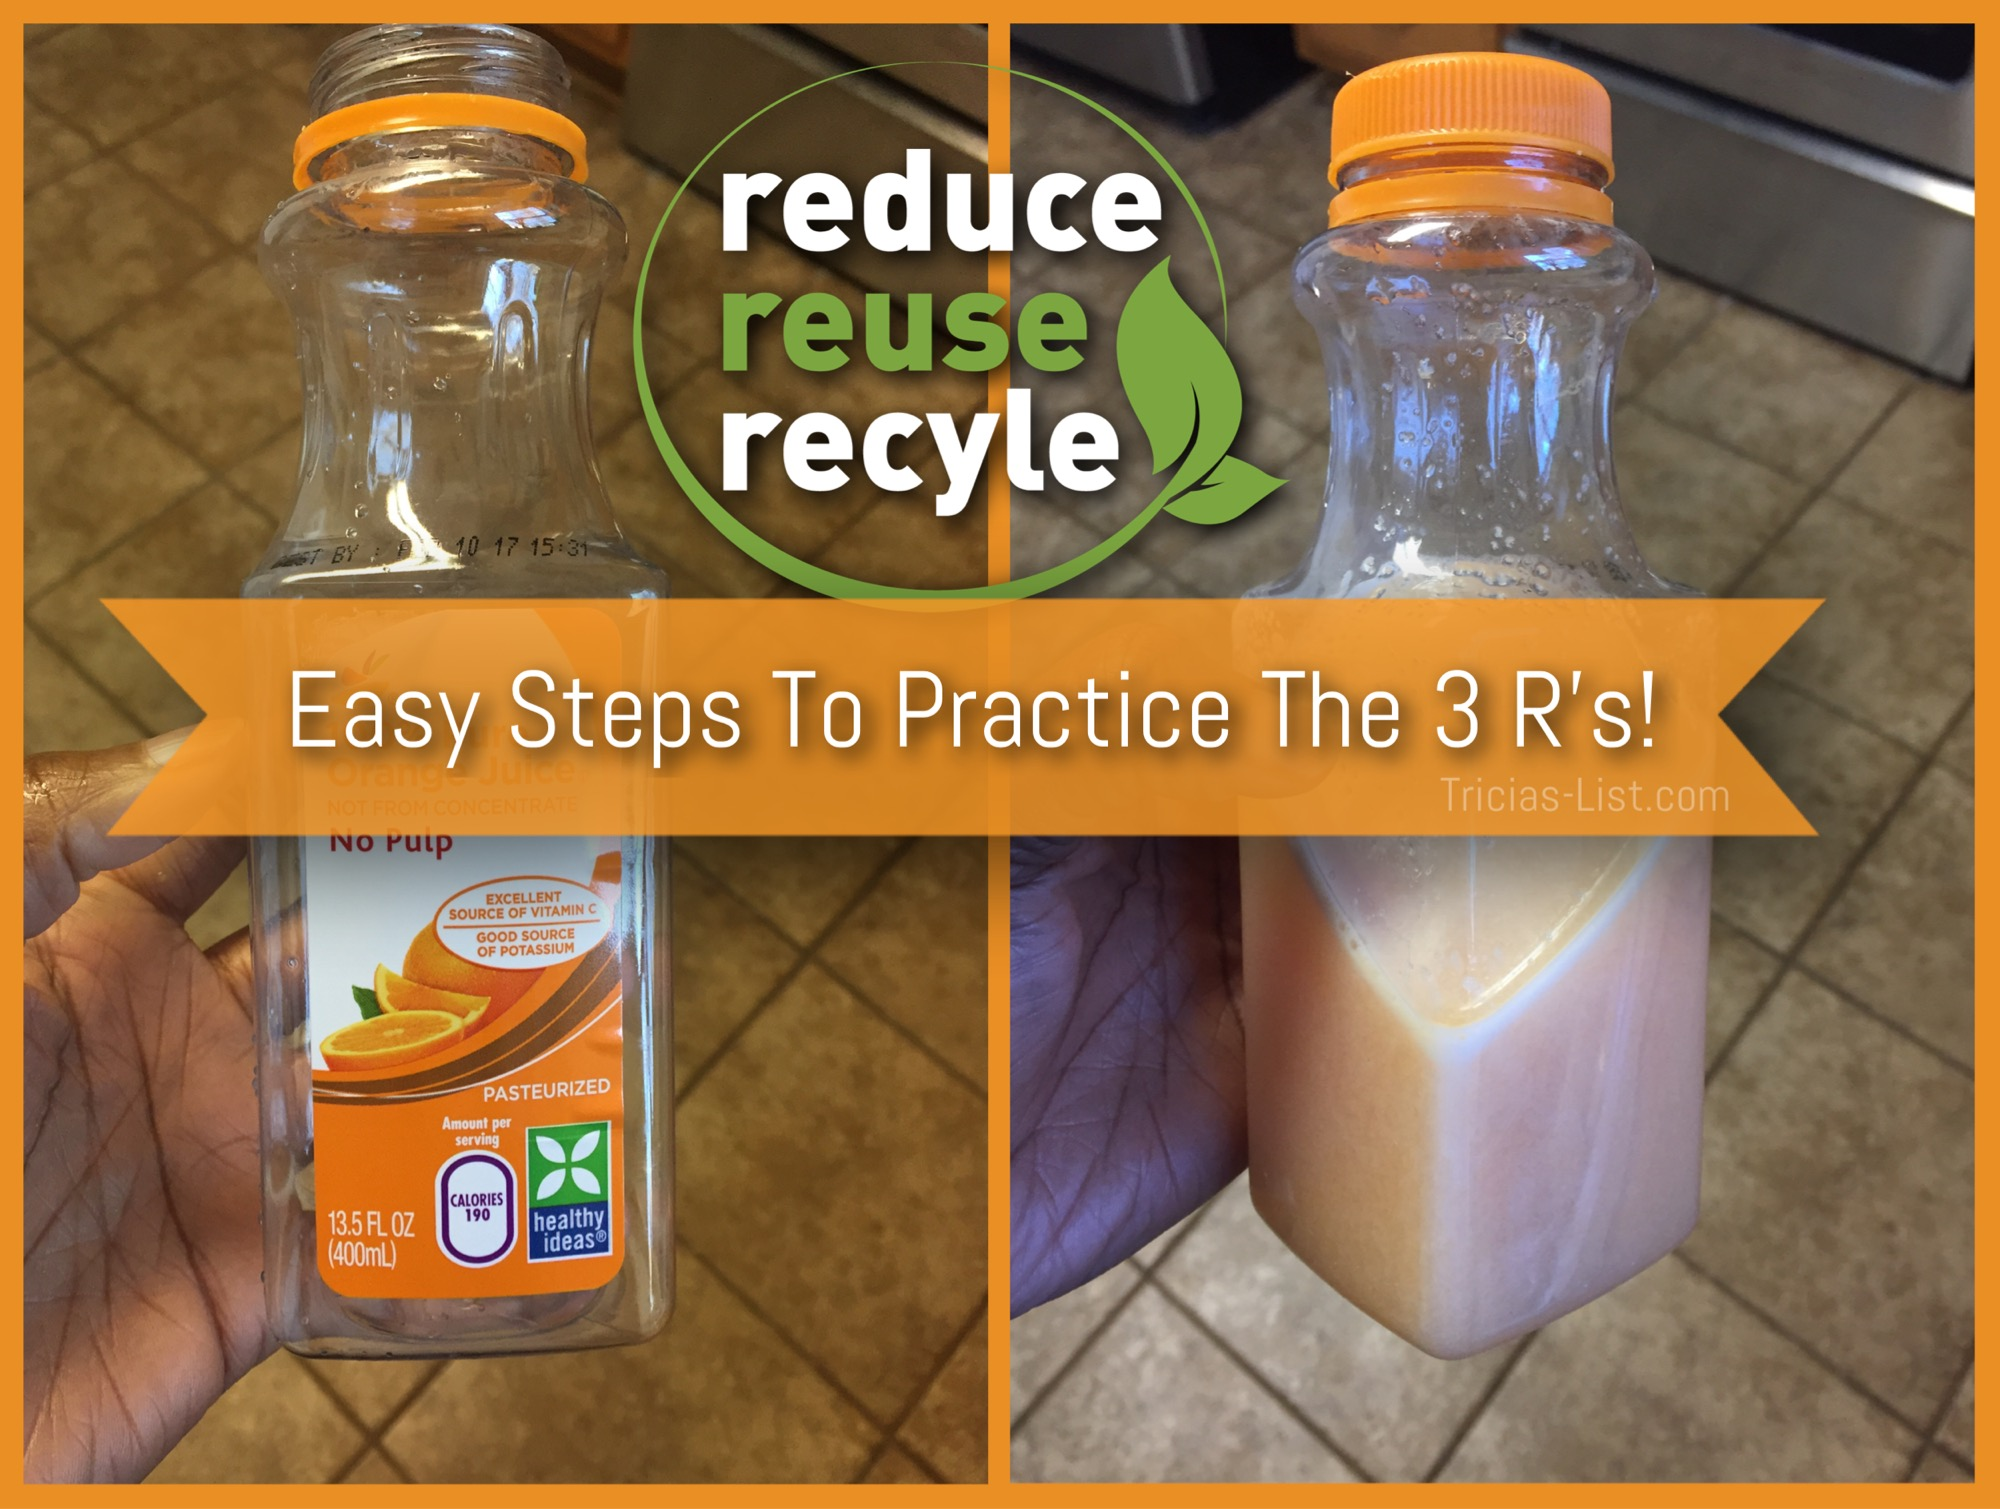 The 3 R's & How Easy They Are To Do!